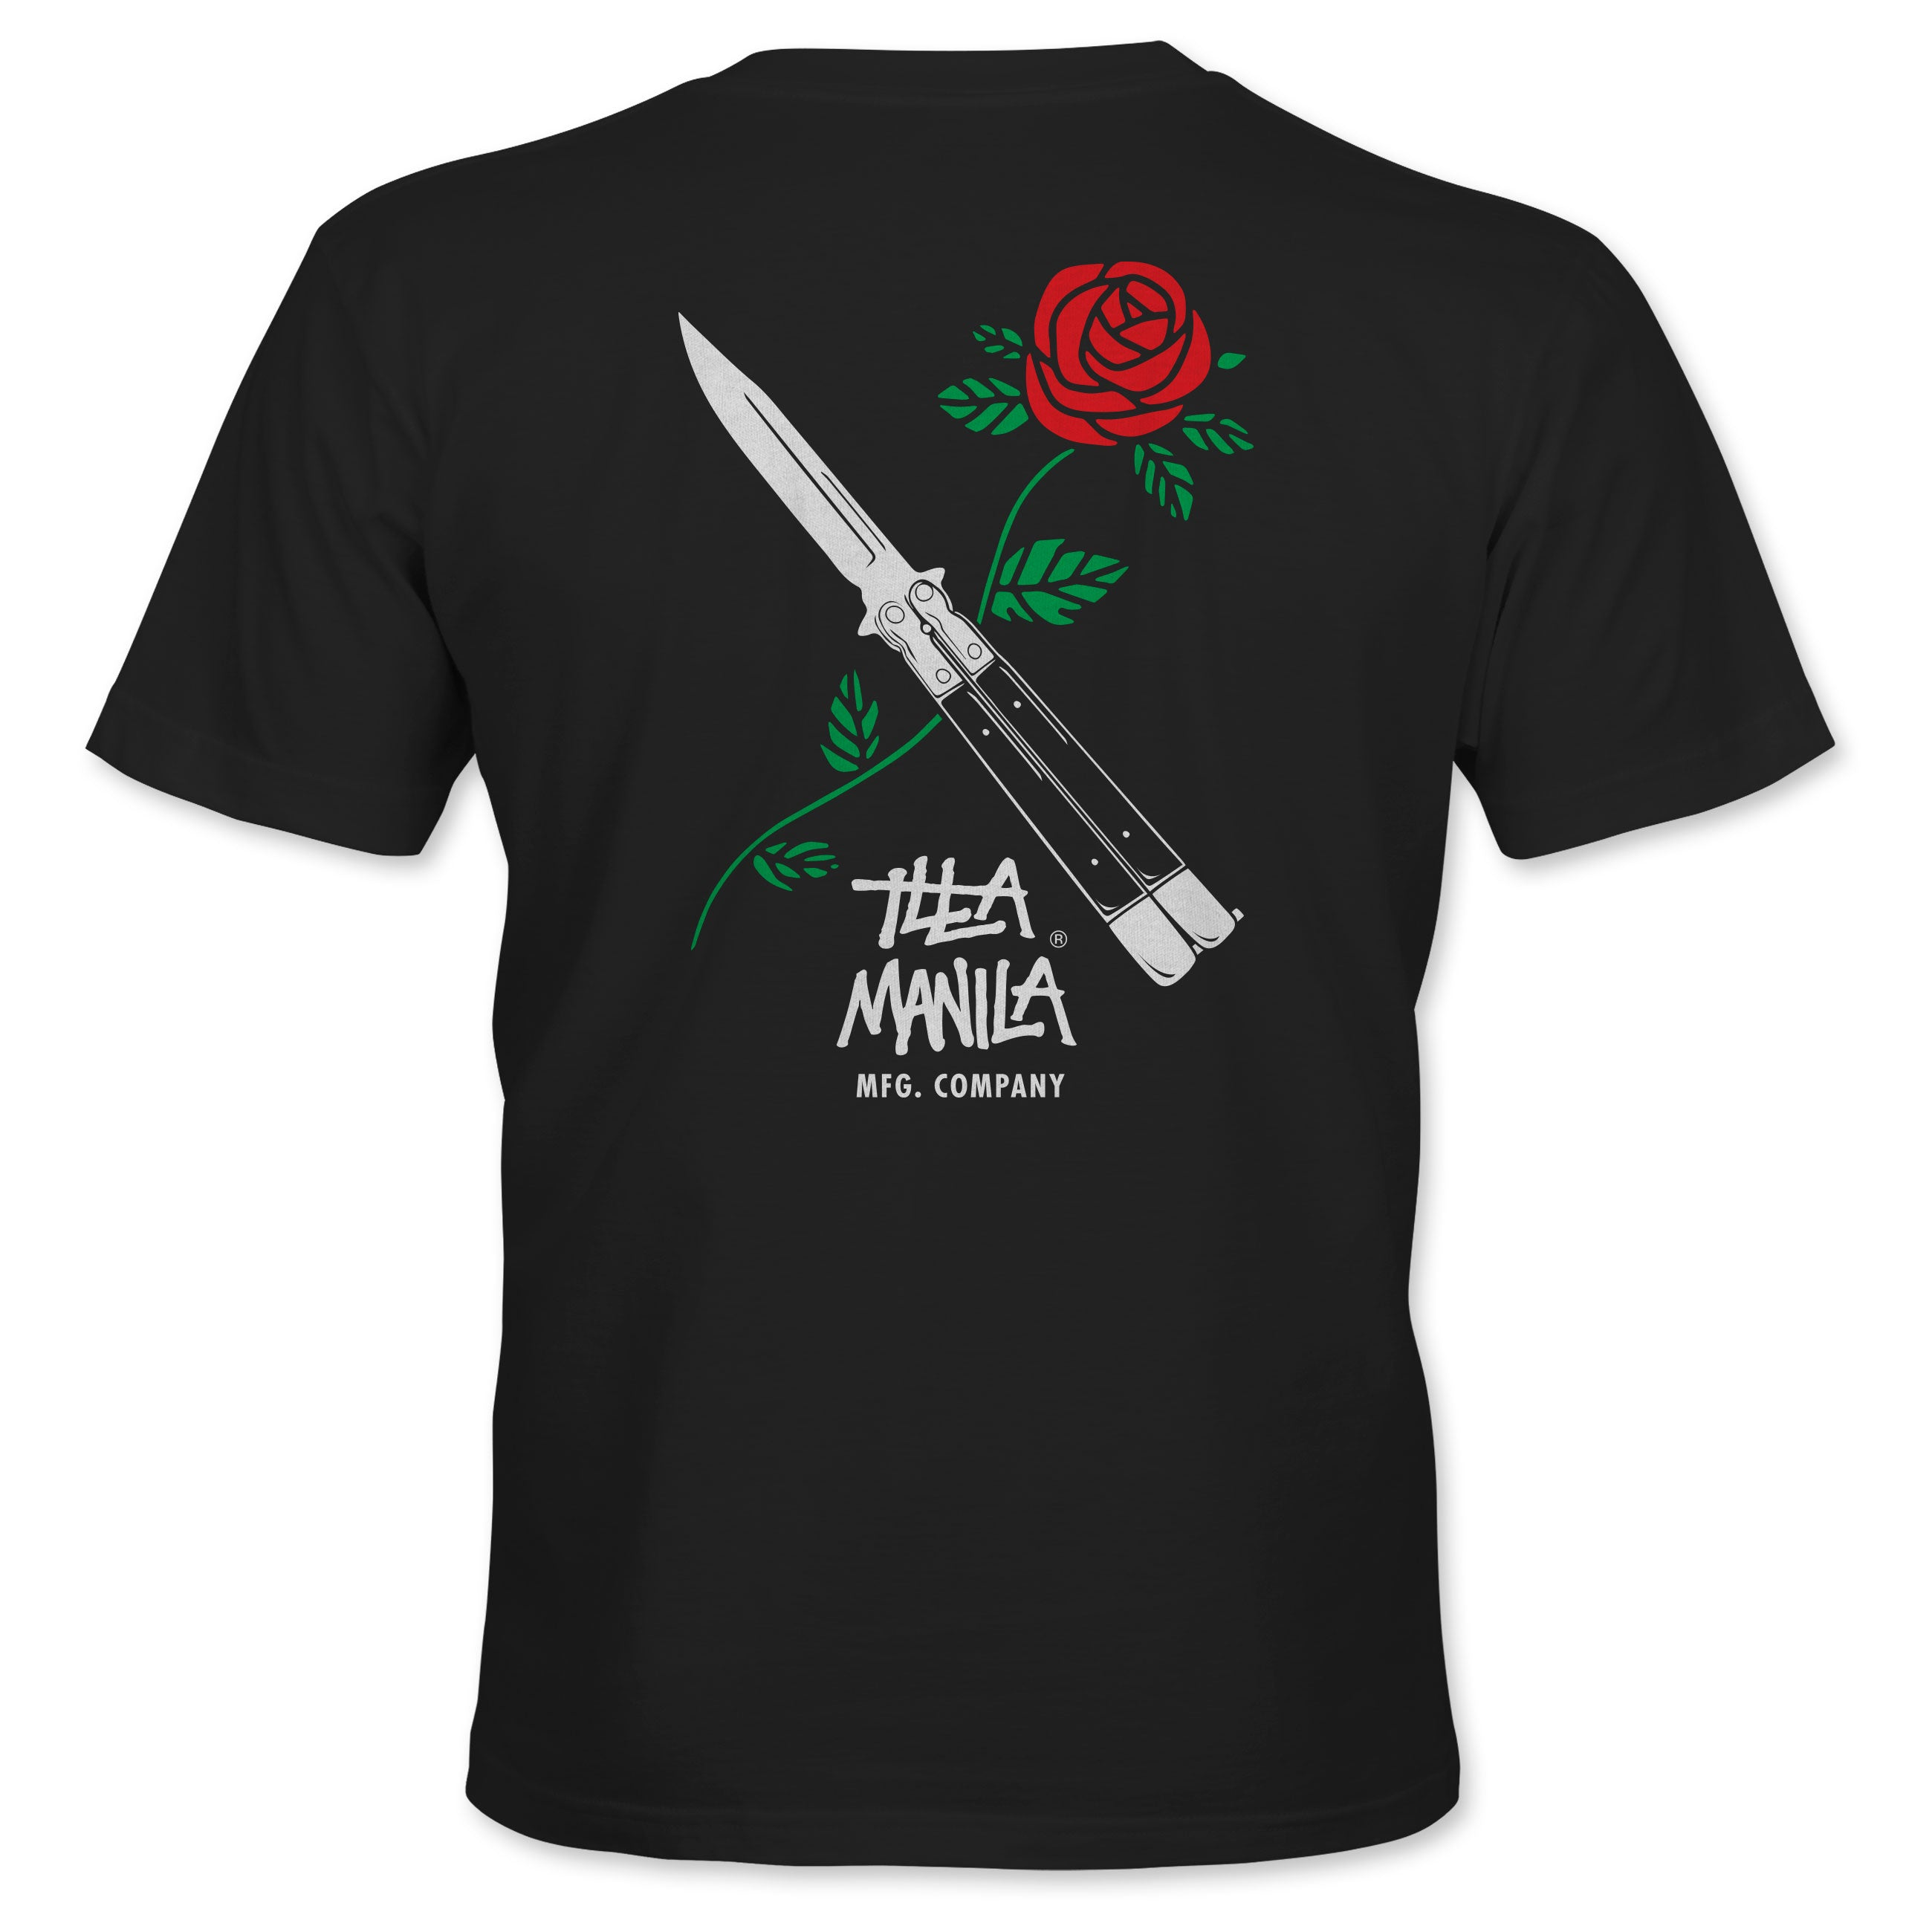 Balisong Rose T-shirt - Black